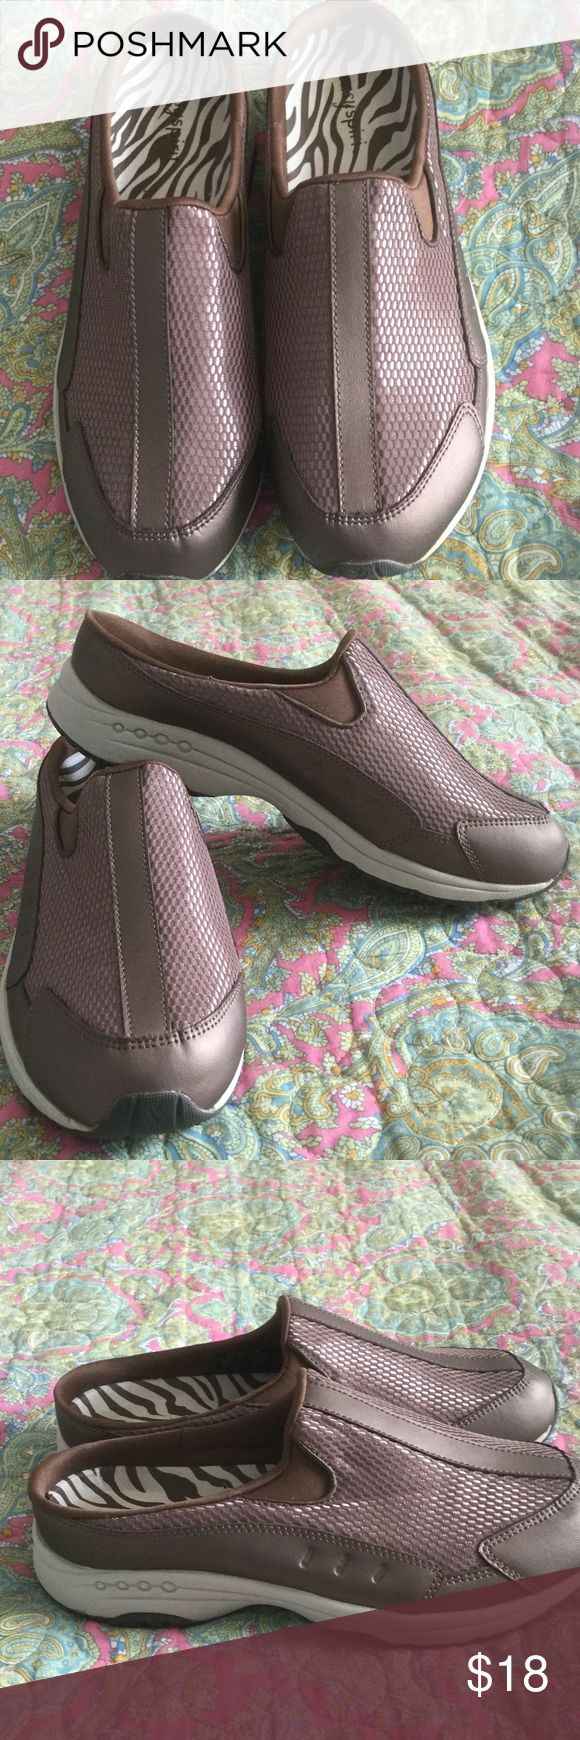 Easy Spirit Shoes Very good using condition size 9.5 Easy Spirit Shoes. Soft and comfortable. From smoke free home Easy Spirit Shoes